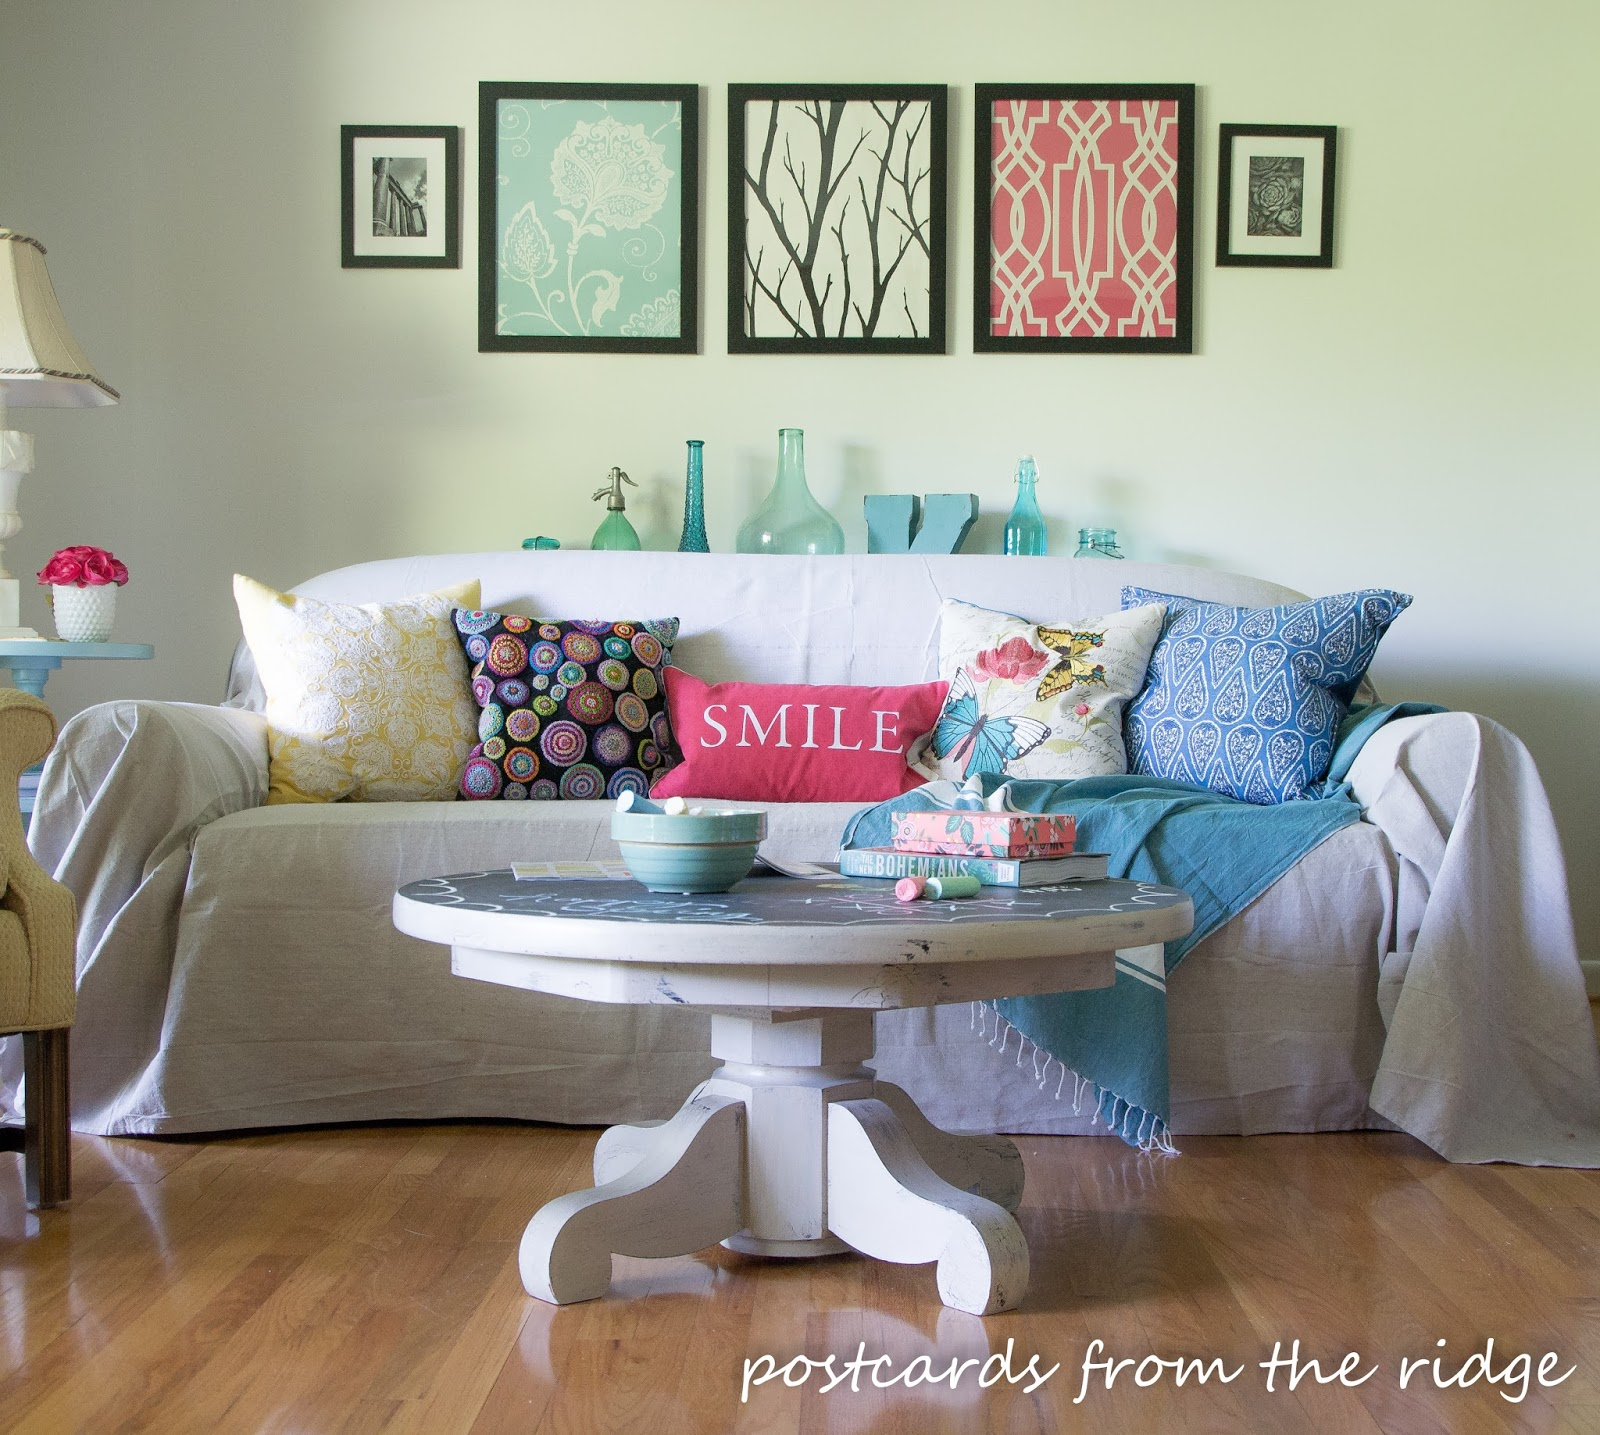 Pedestal Table with chalkboard top inspired by Pottery Barn